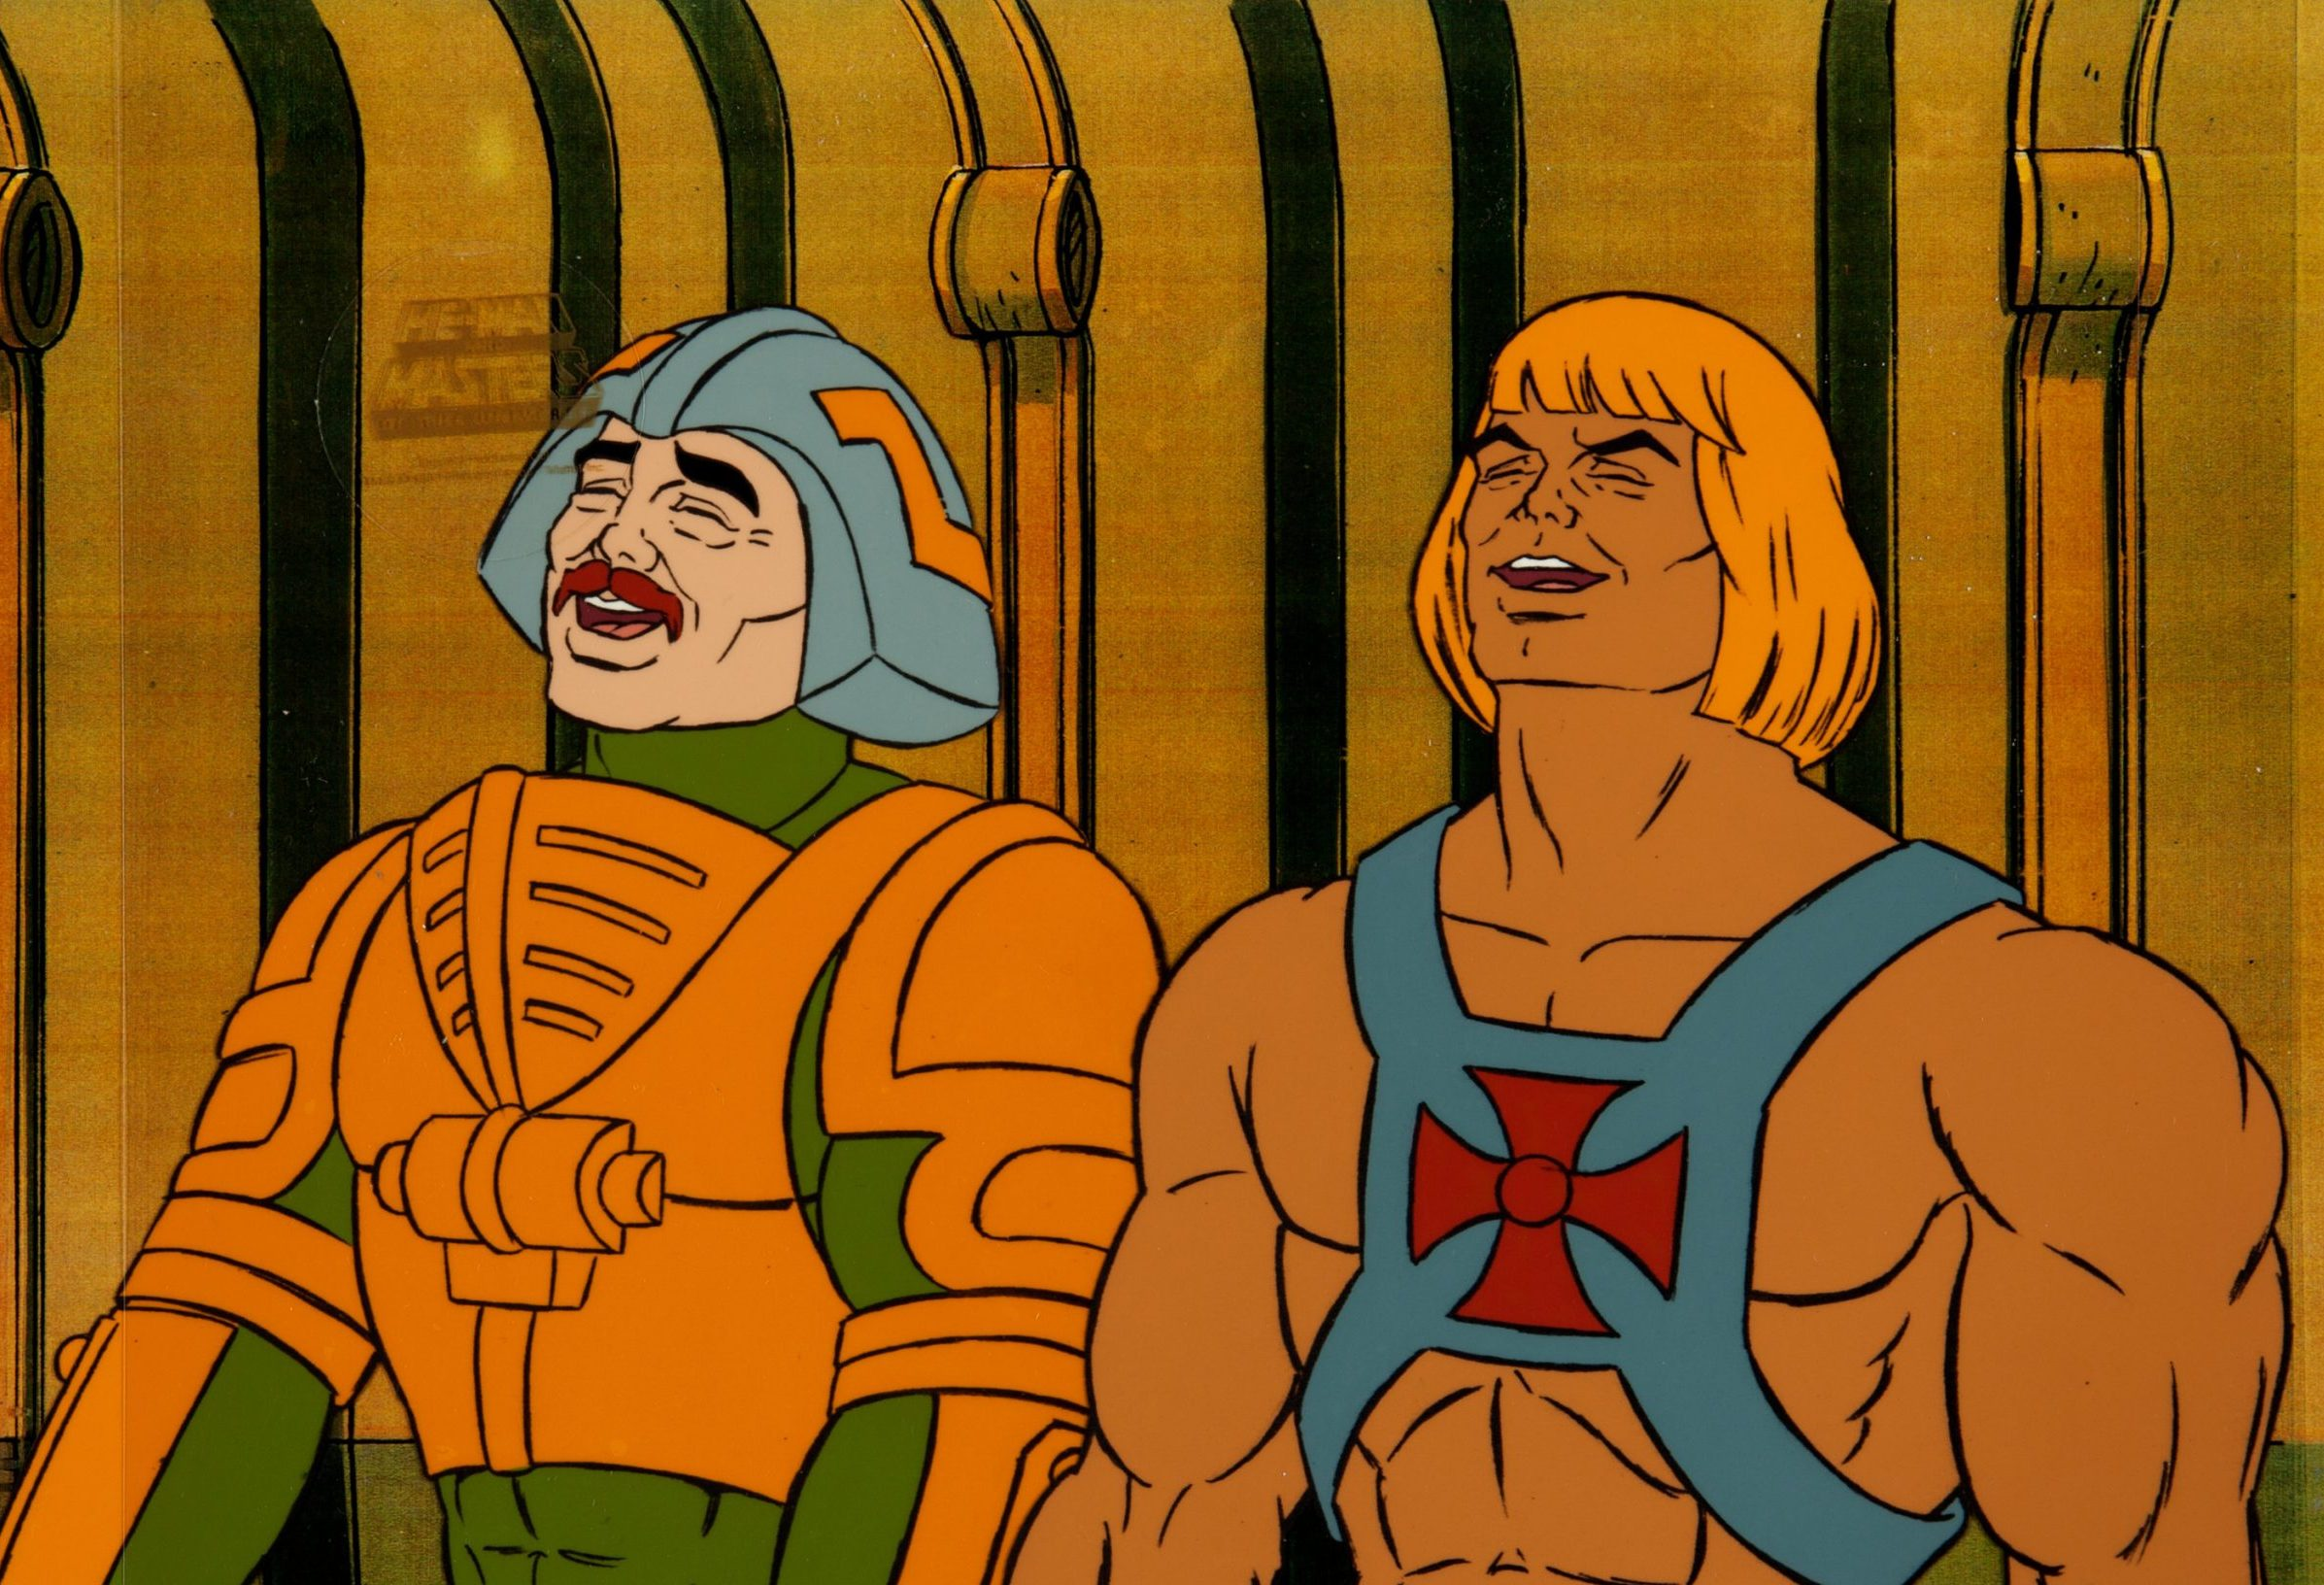 Man-at-Arms and He-Man laugh